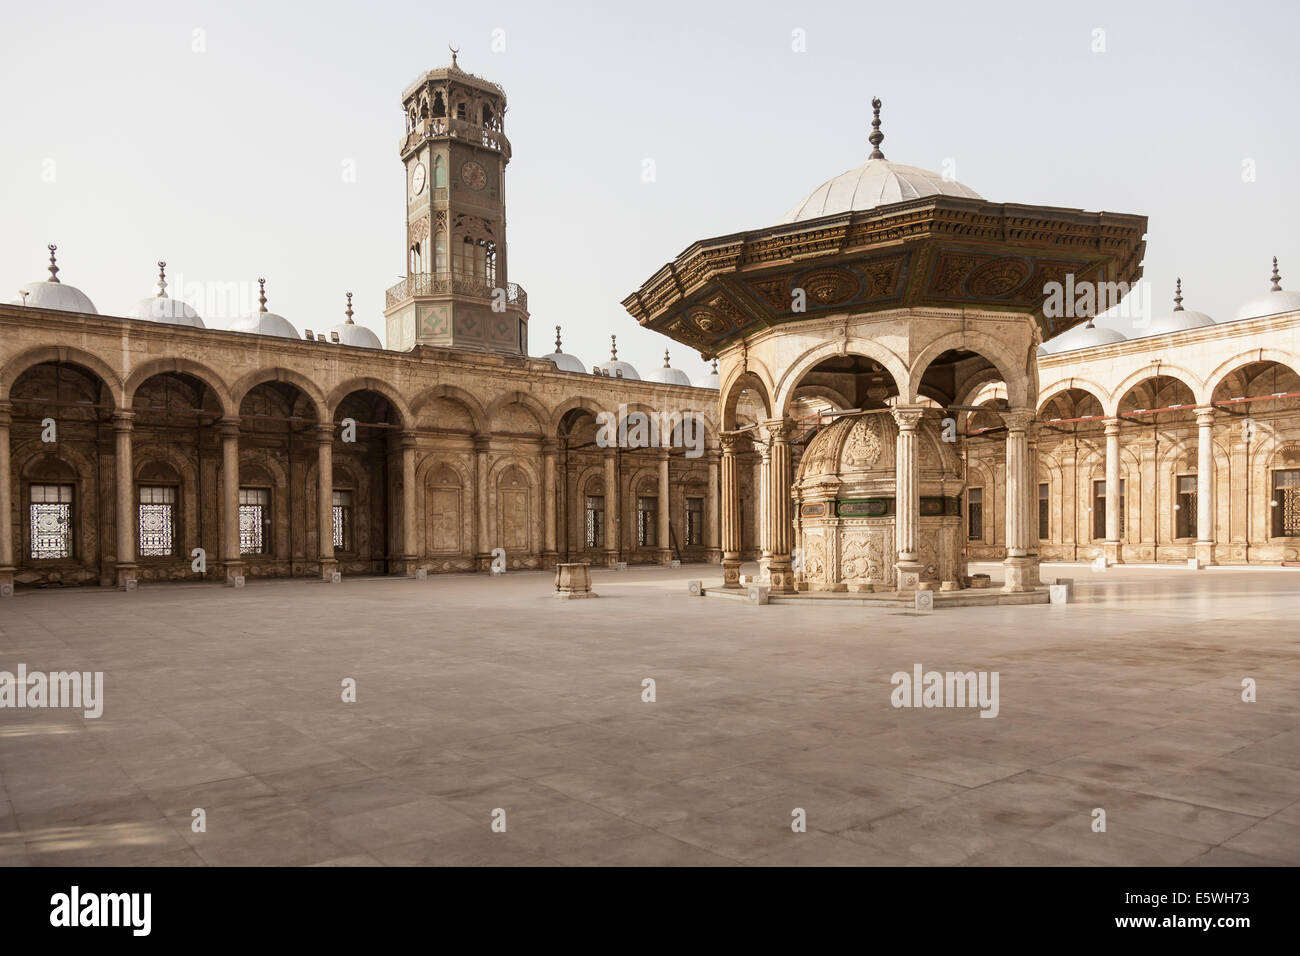 Interior courtyard and clock tower, Alabaster Mosque / Mosque of Muhammad Ali Pasha in the Citadel in Cairo, Egypt - Stock Image